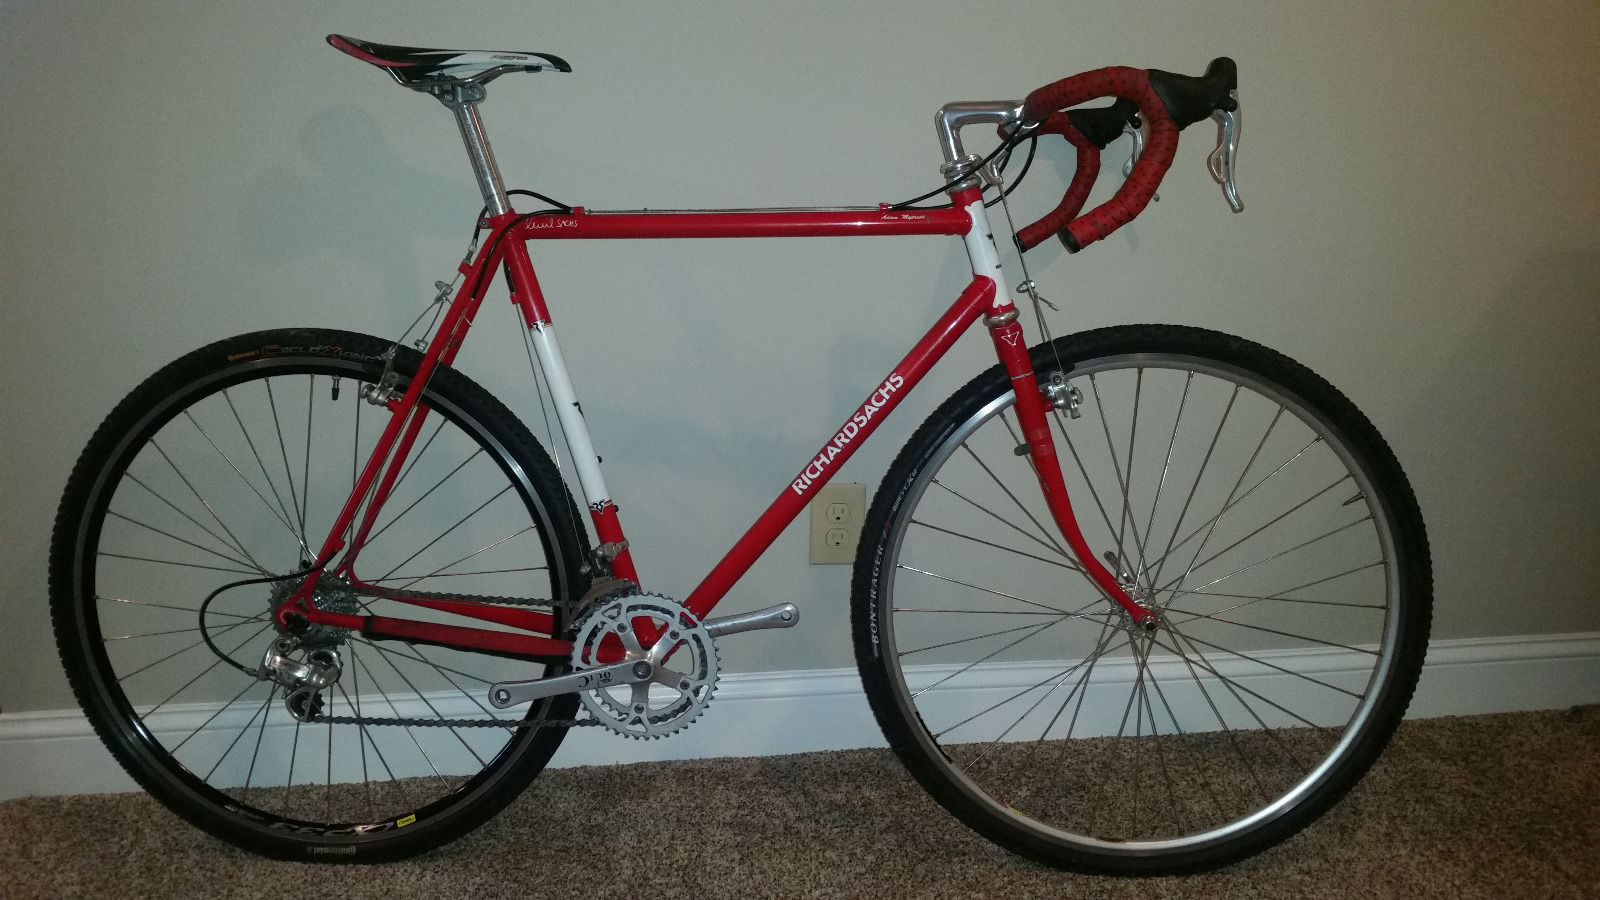 The bike, as it appeared in its eBay listing